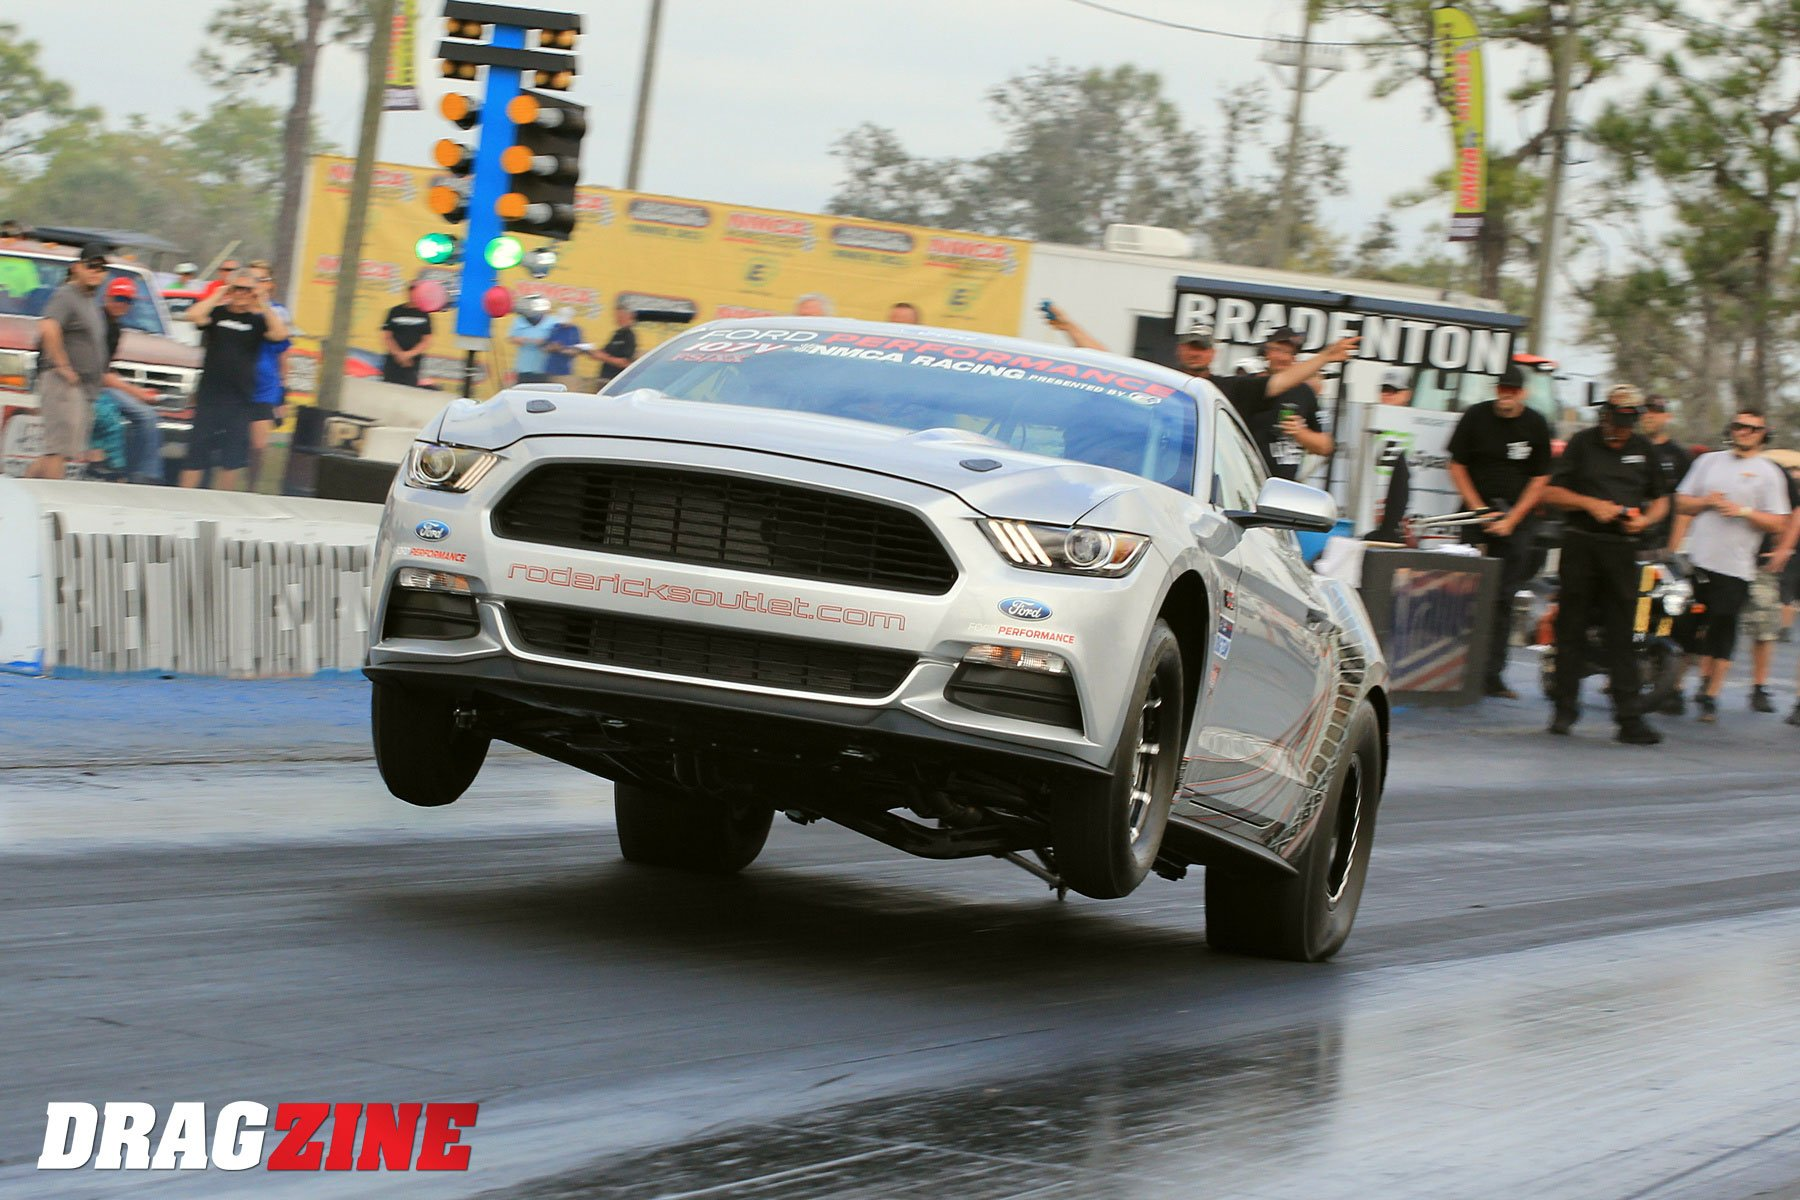 The Ford Coyote Engine Continues To Shine As A Performance Workhorse With Blistering Numbers Showing Up At Drag Strip All Levels Of Racing